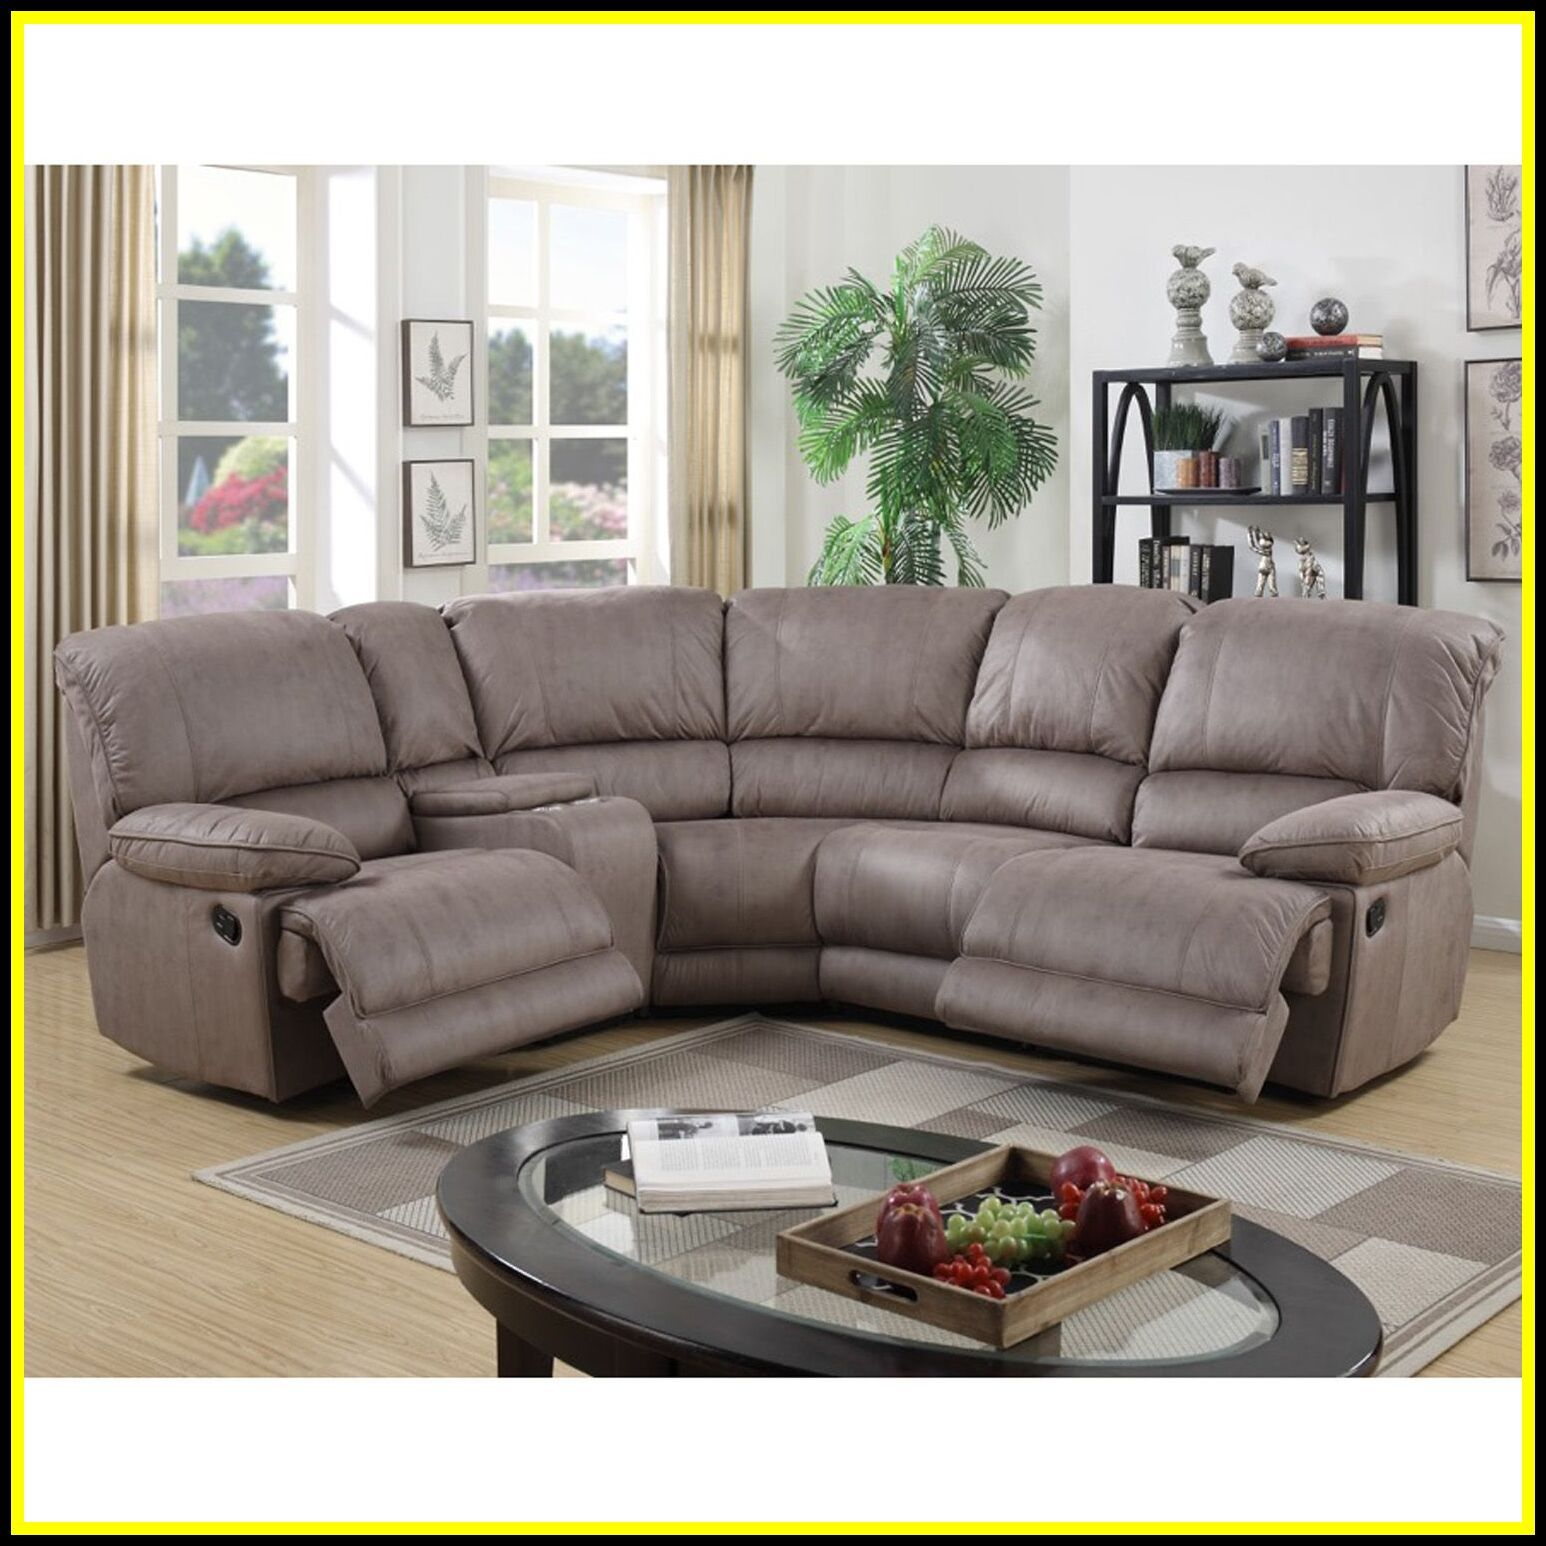 87 Reference Of Sofa Bed Corner Suite In 2020 Recliner Corner Sofa Corner Sofa Bed Corner Sofa